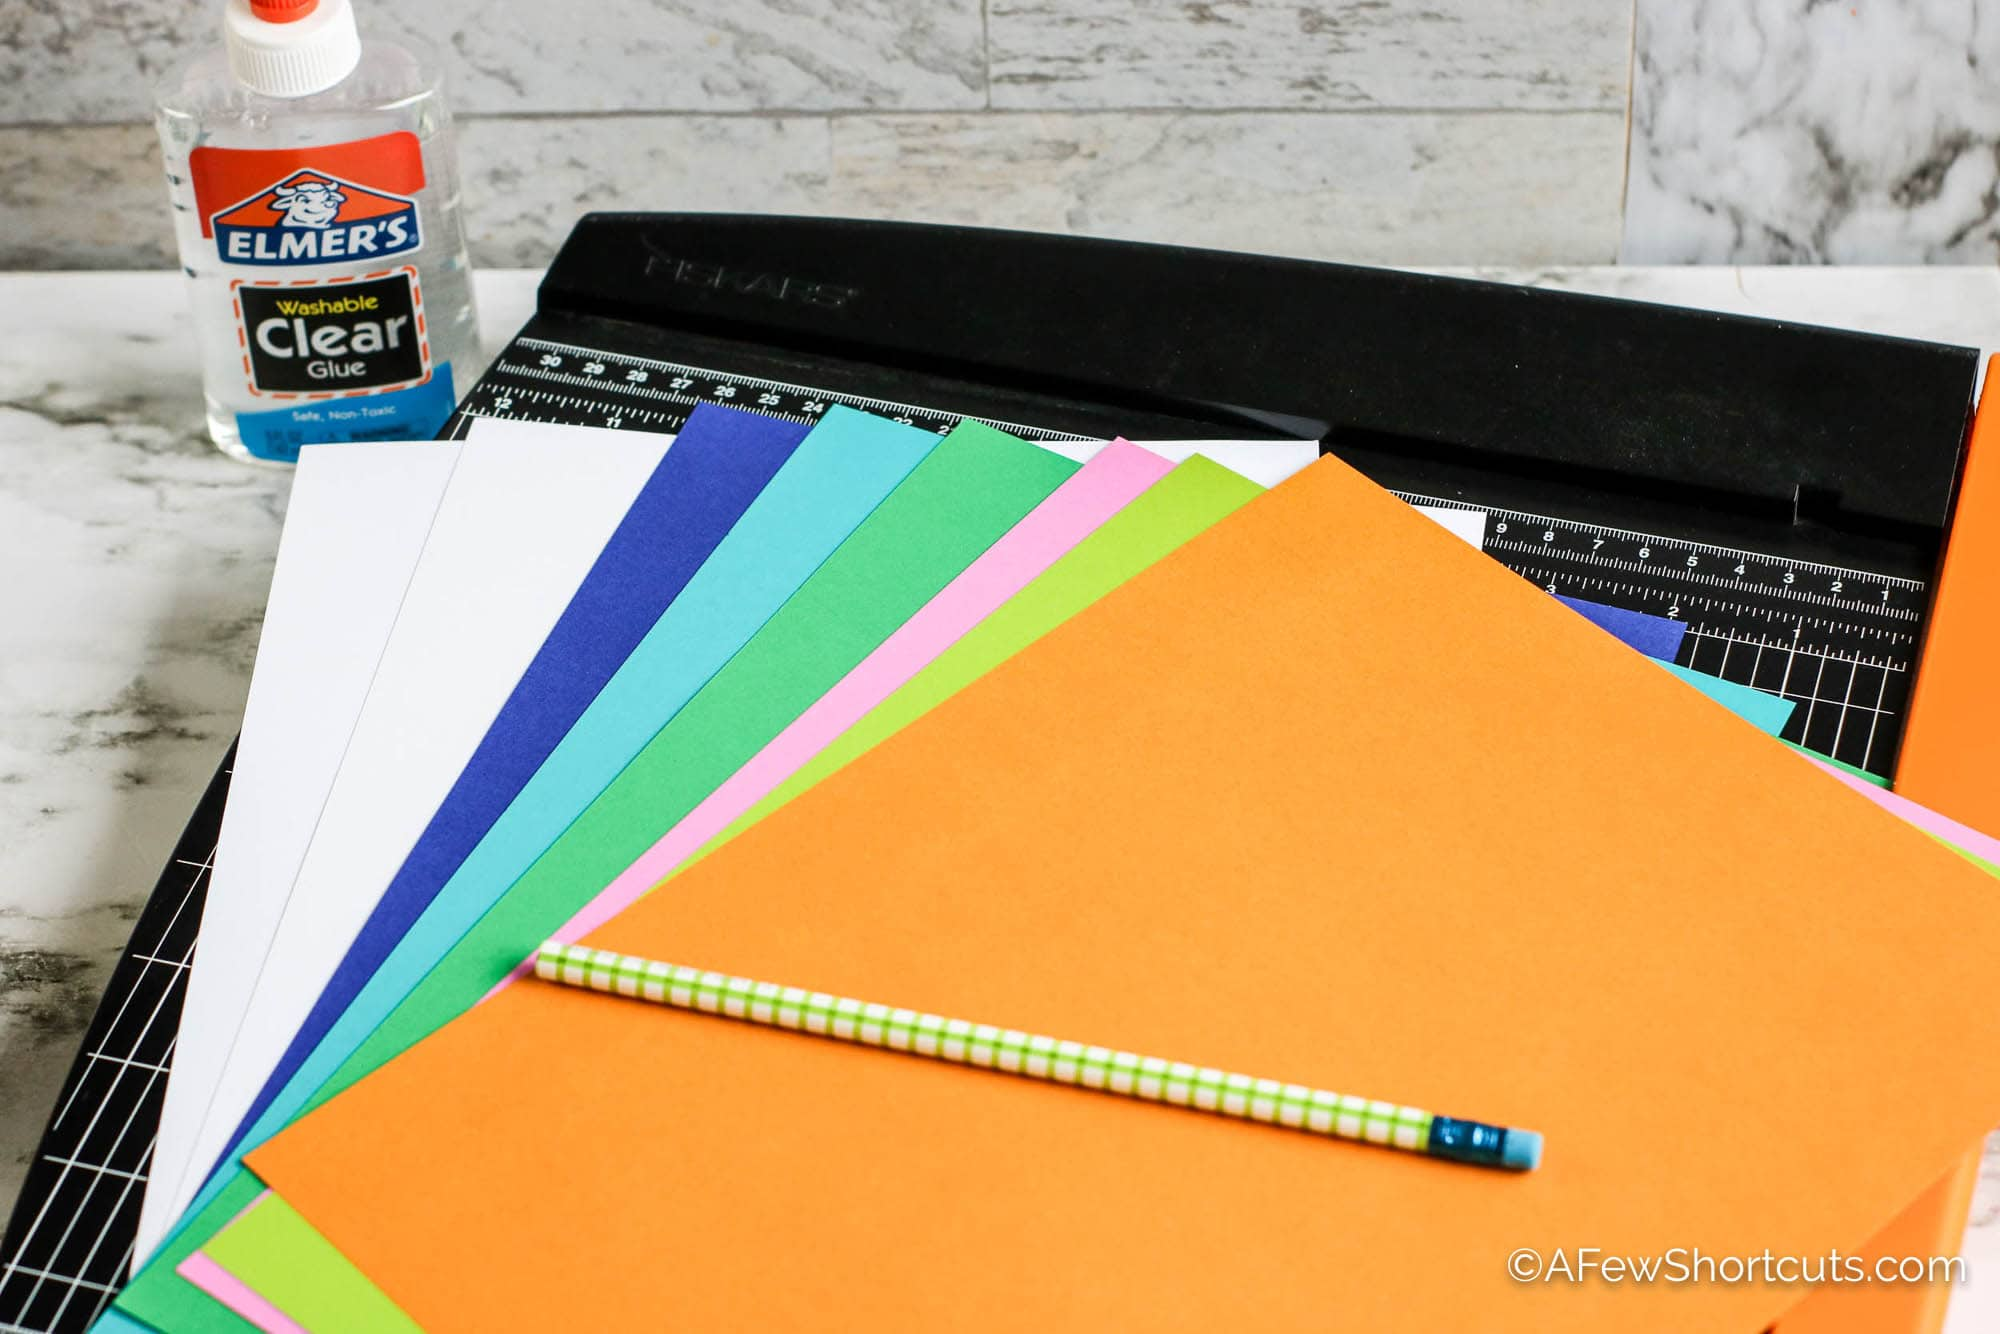 Construction paper and paper cutter